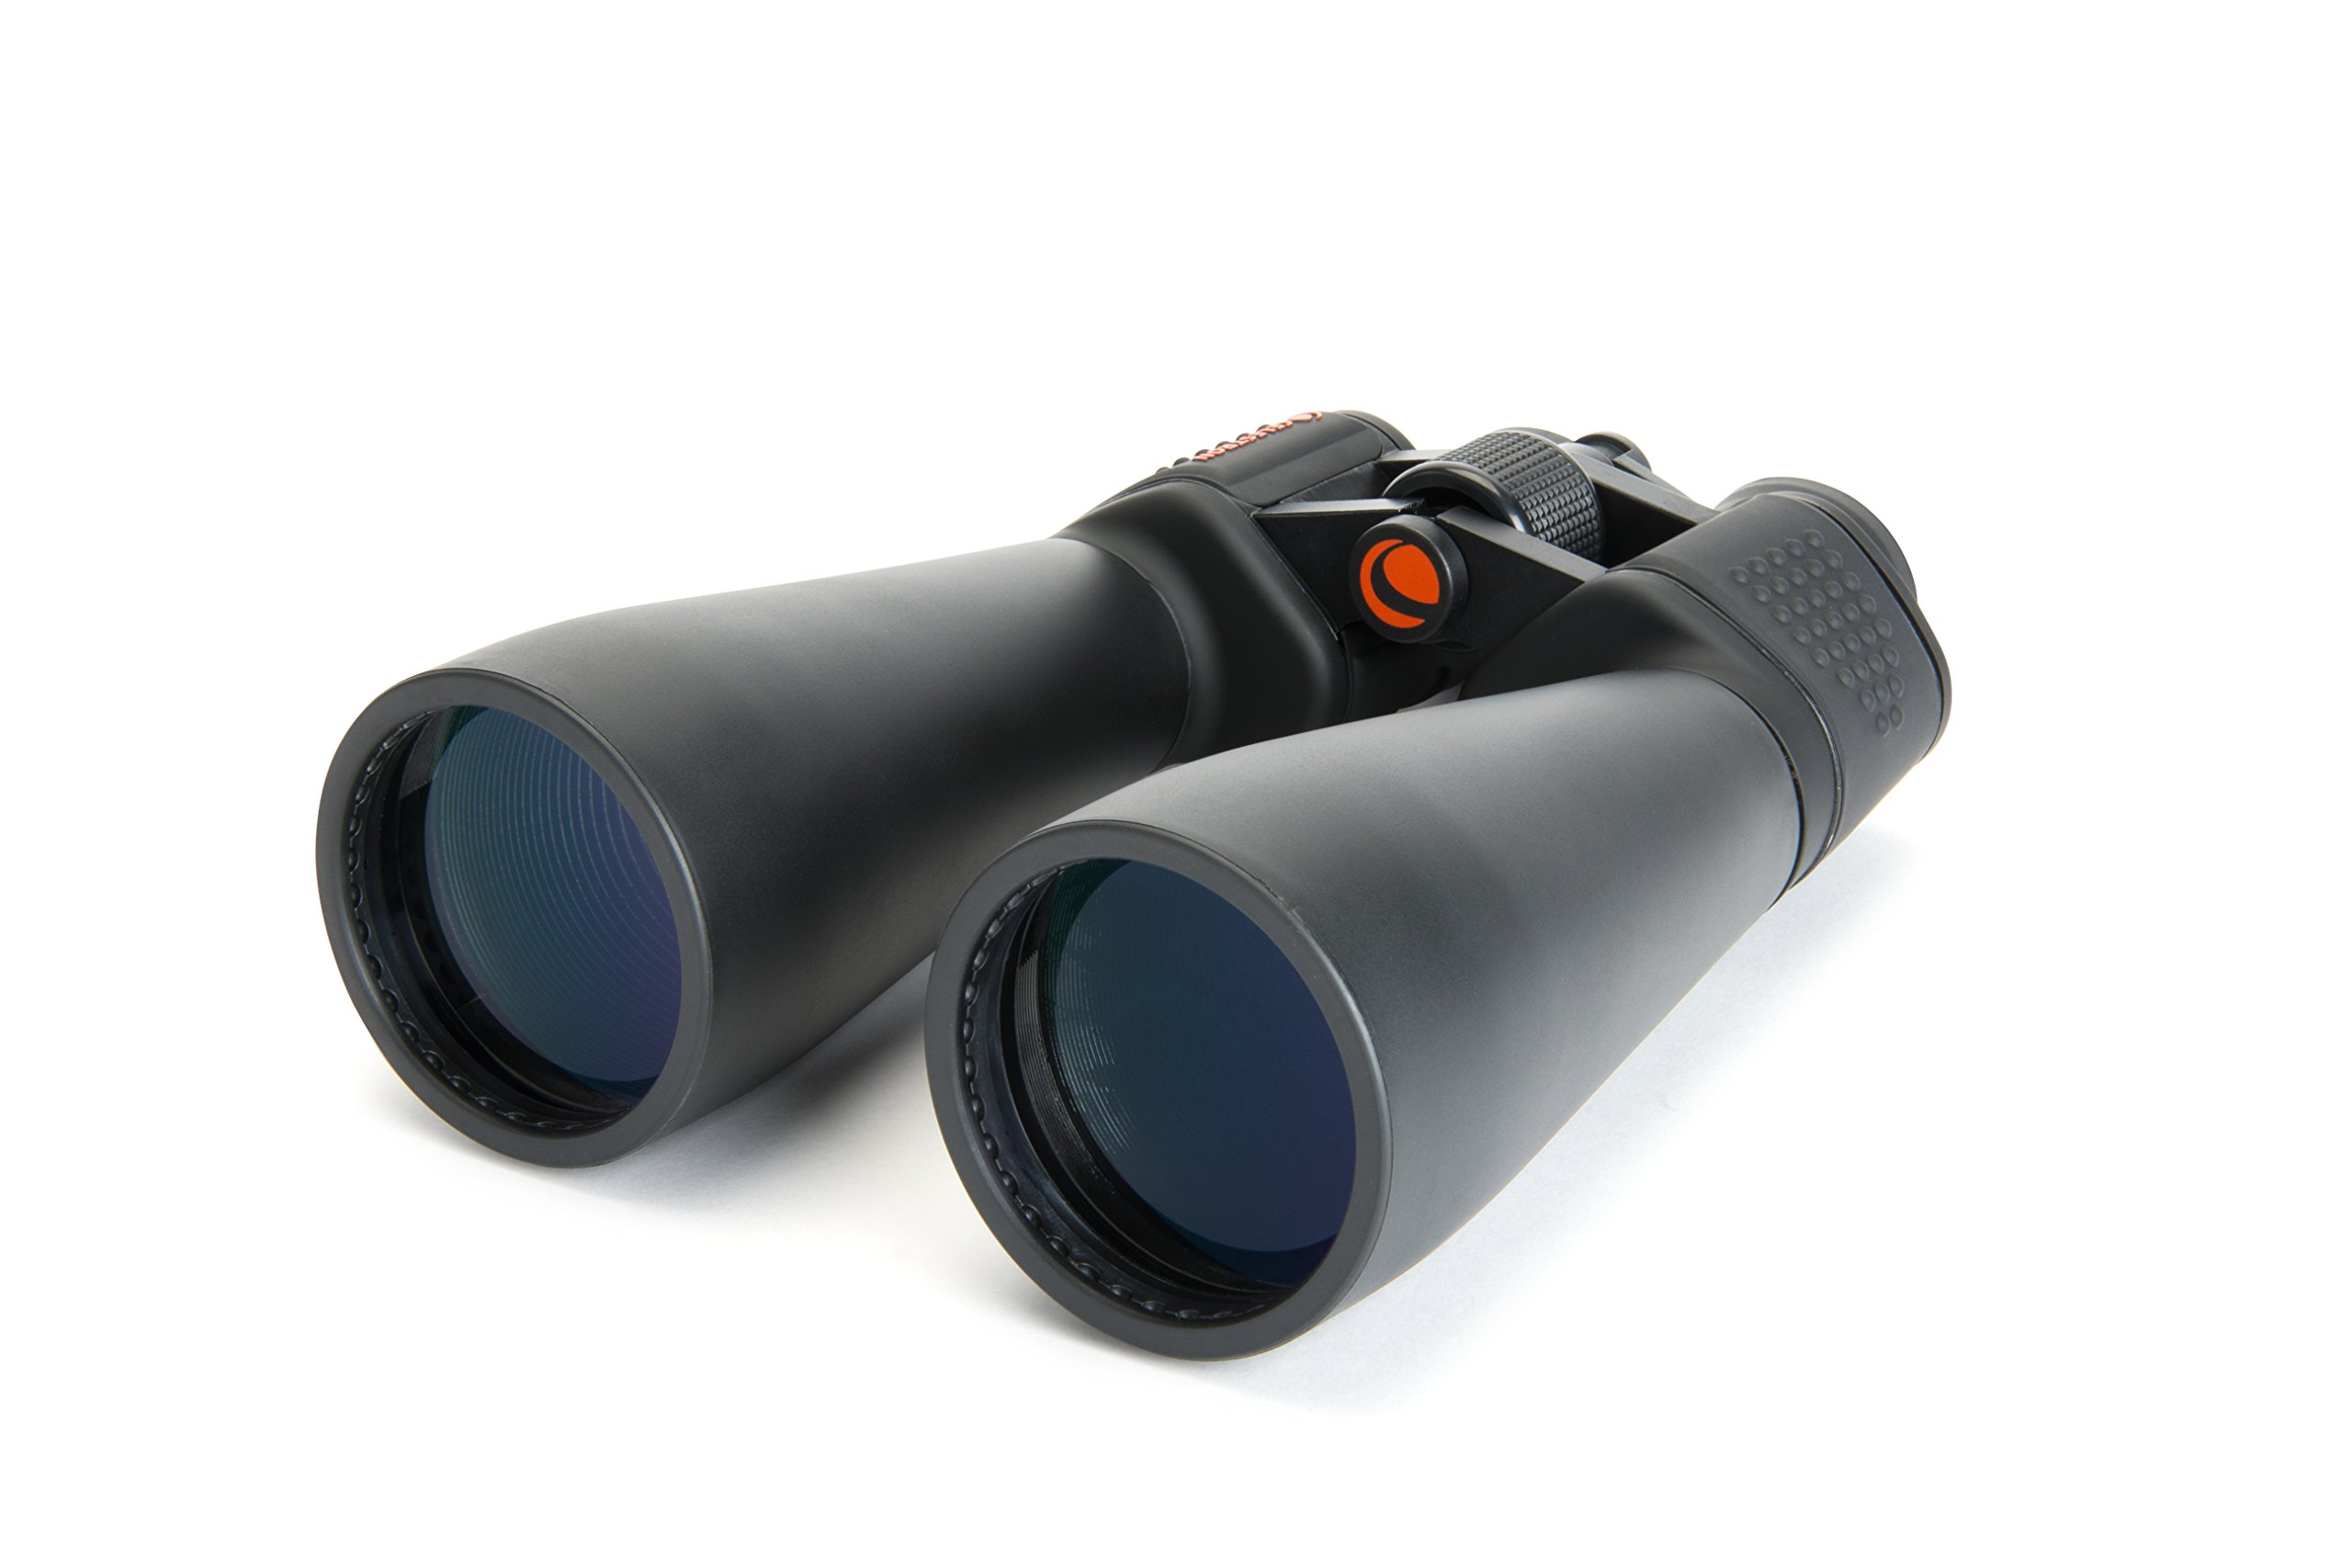 celestron-skymaster-giant-15×70-binoculars-with-tripod-adapter-6-hires